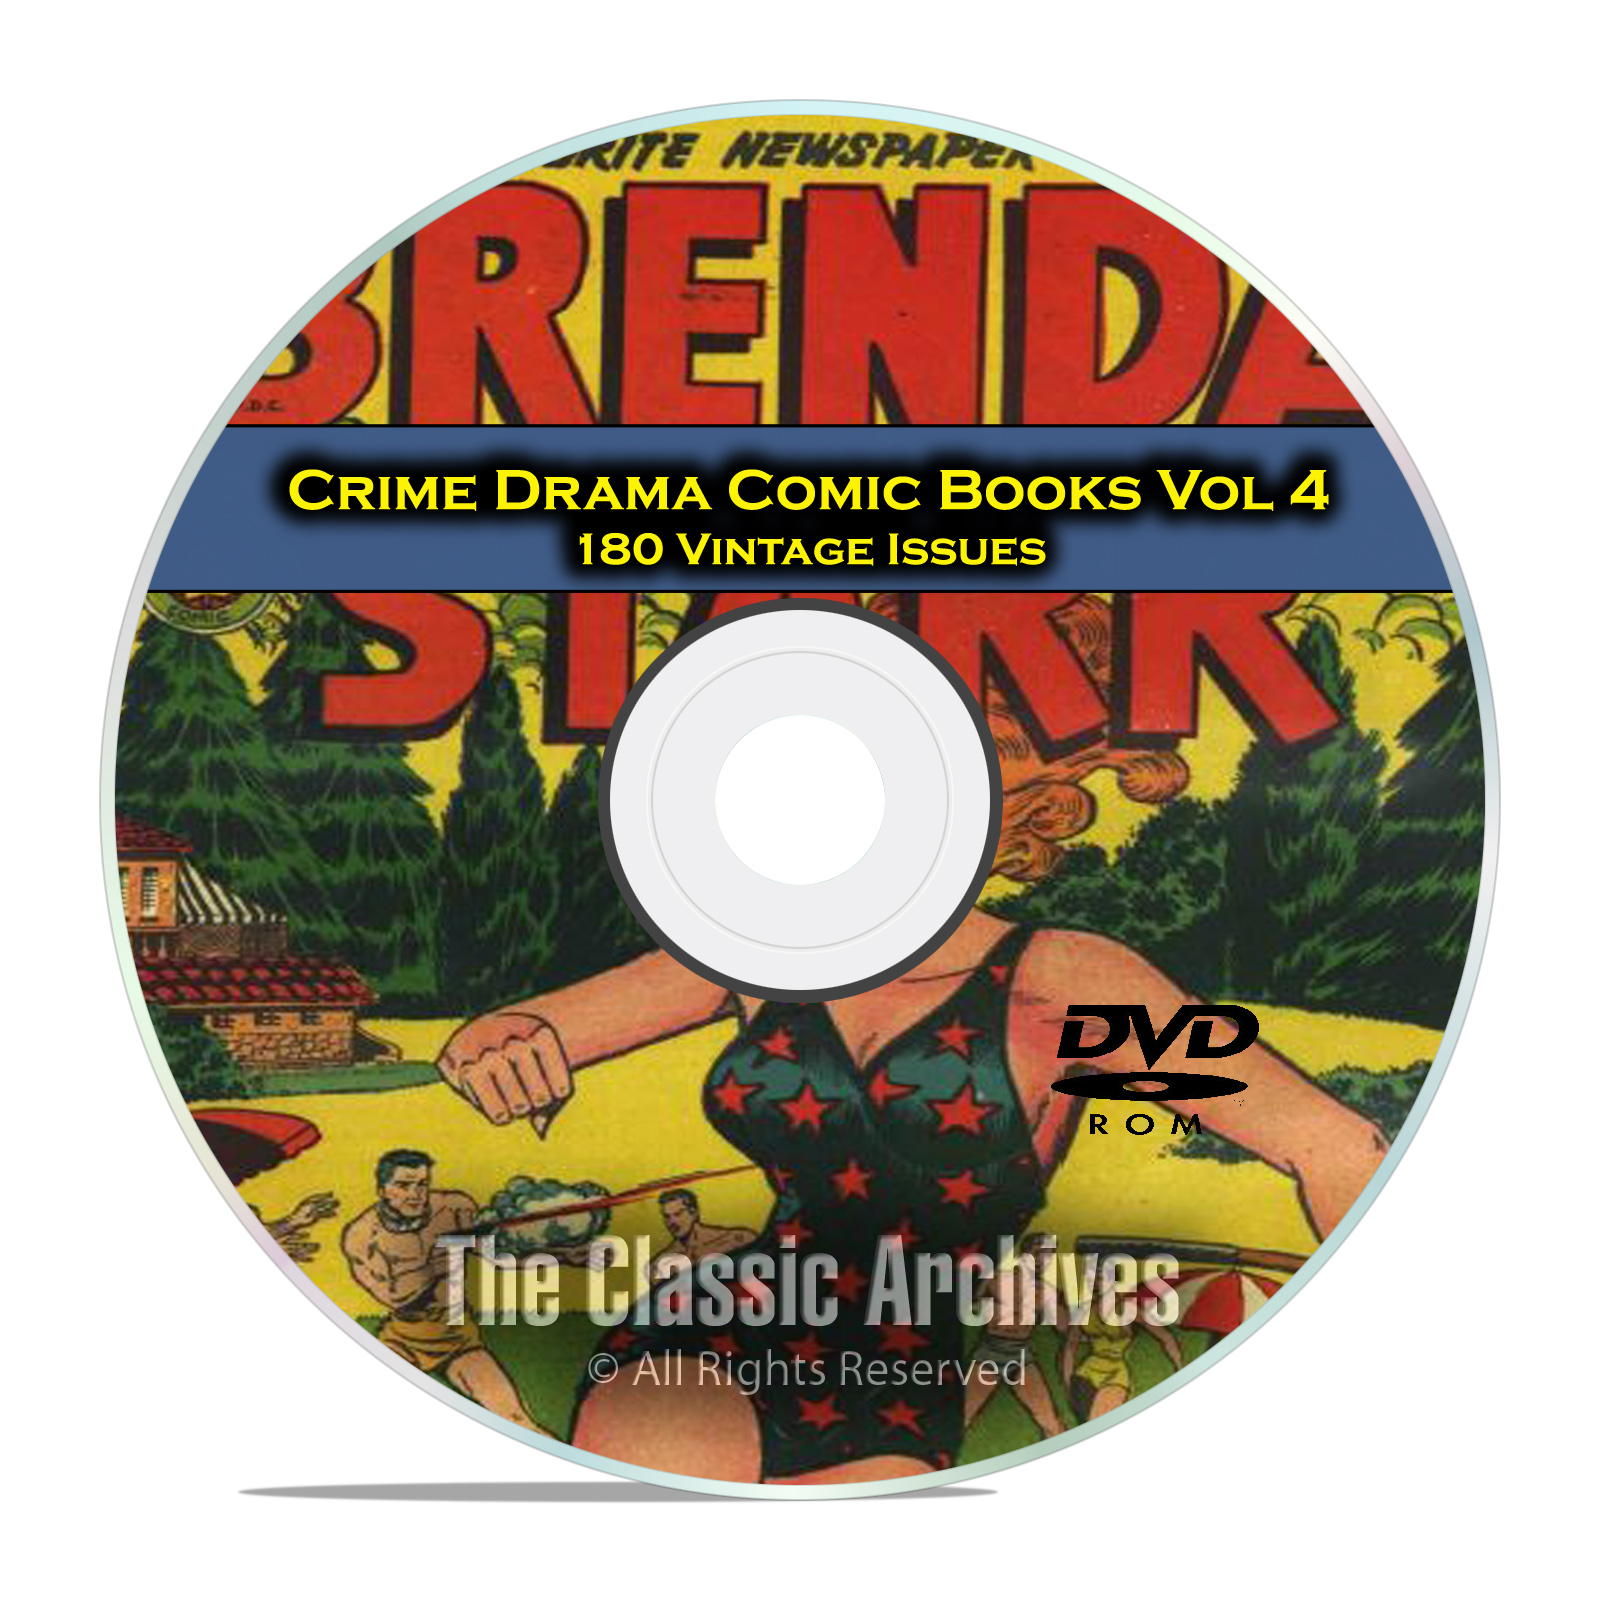 Crime Drama, Suspense, Vol 4, Fight Against Crime, Golden Age Comics DVD